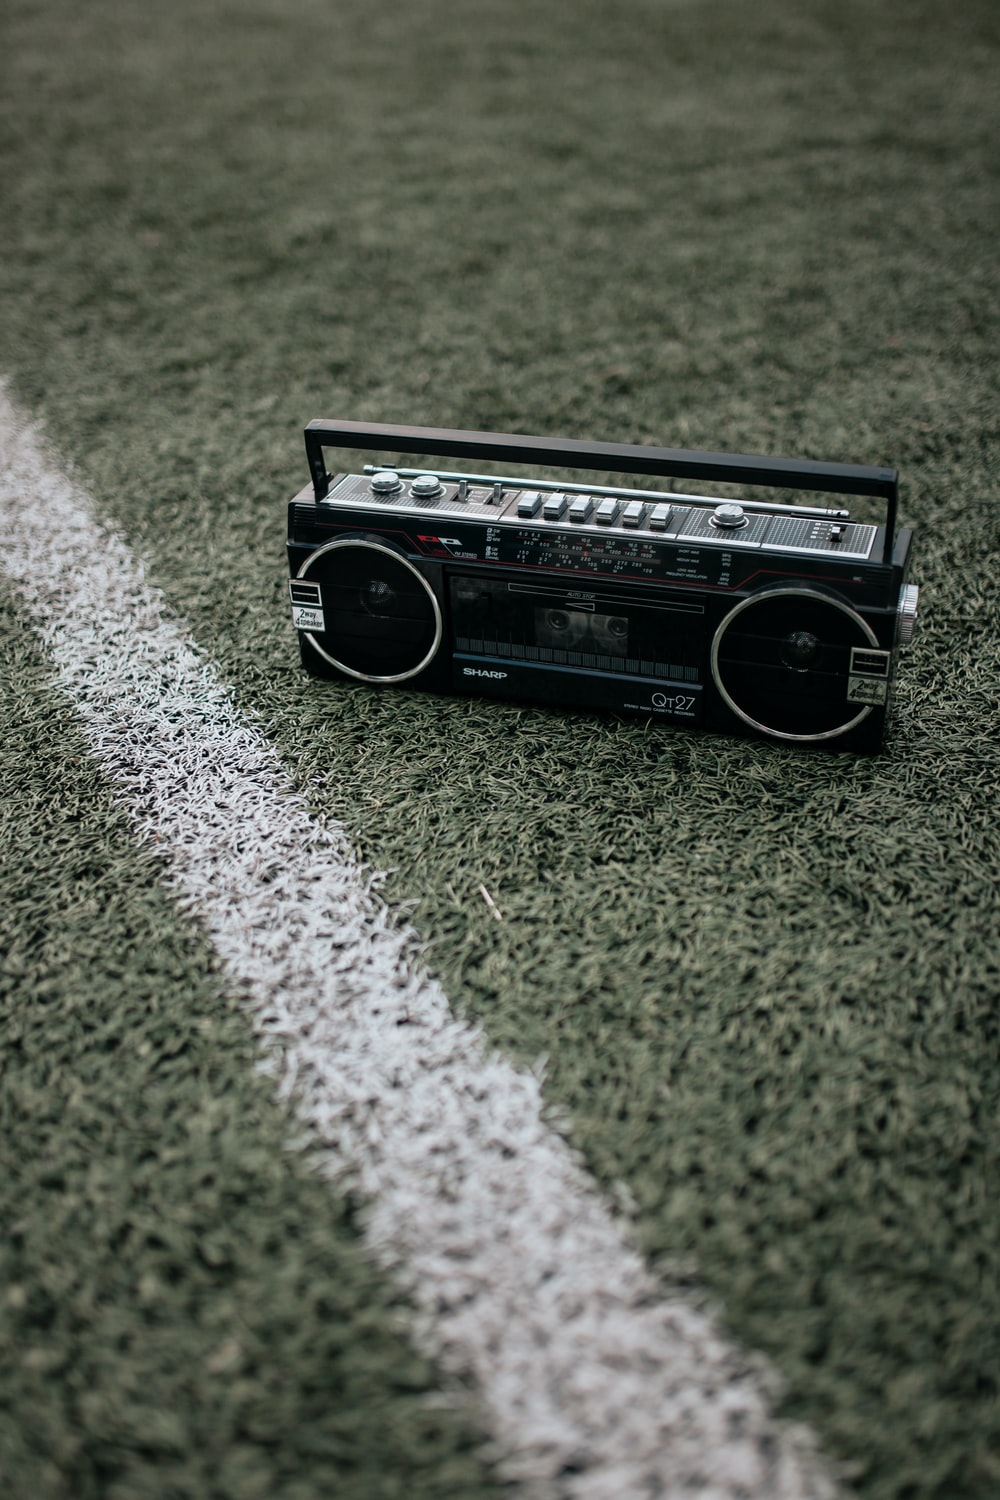 black and gray radio on green grass field